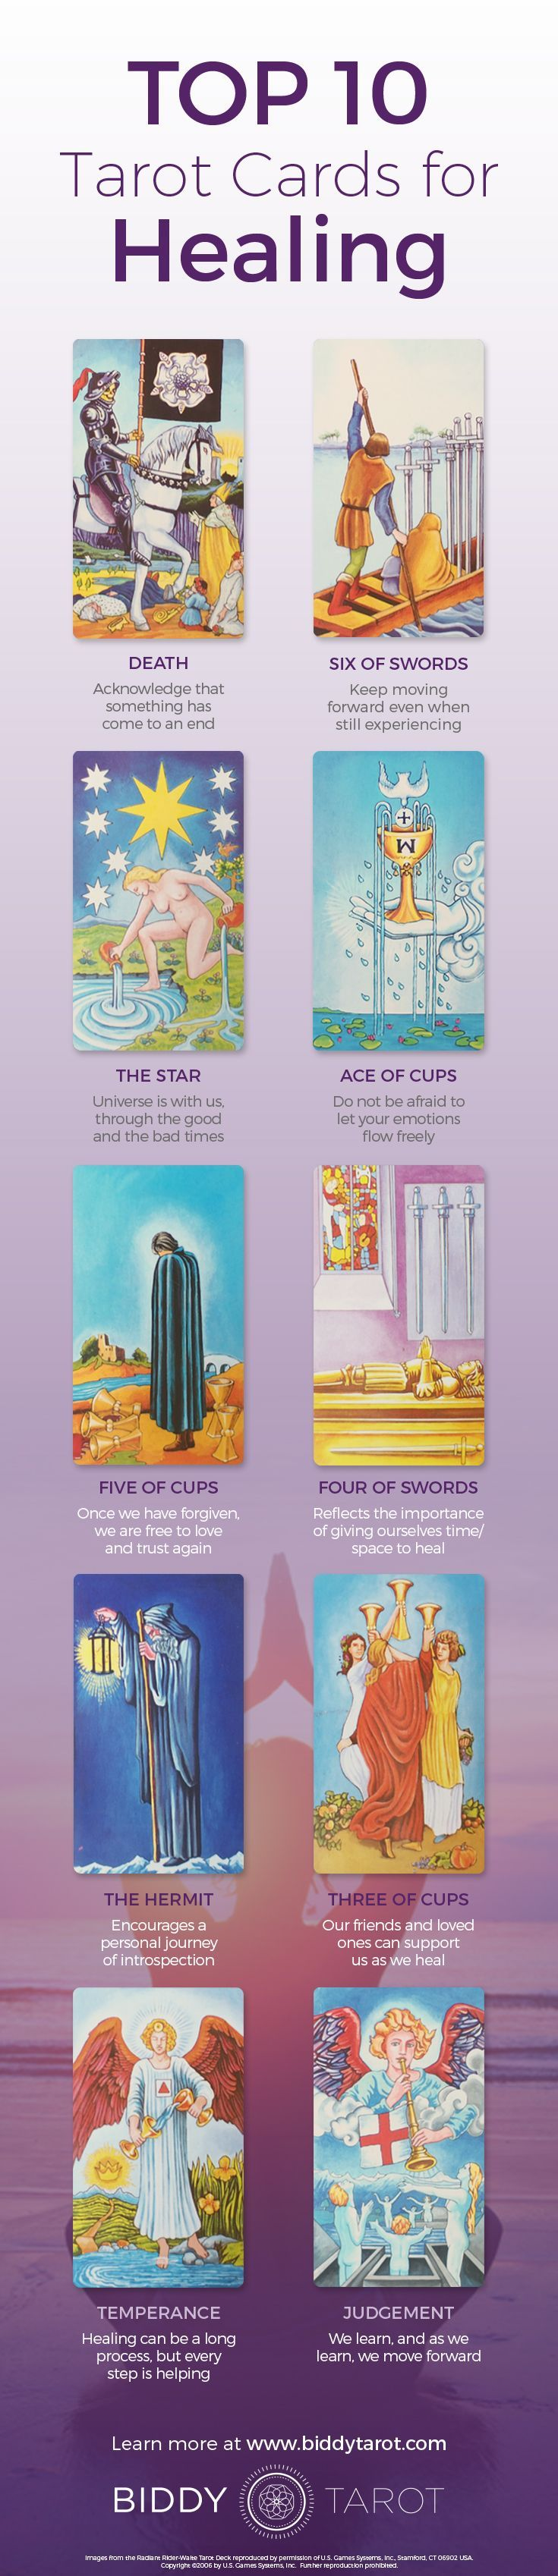 As we navigate our way through life, we invariably encounter difficult experiences that shake us to our core. Over time, though, we #recover through a process of renewal and #healing, as we find the true #blessing in our struggles. Download your free copy of my Top 10 Tarot Cards for love, finances, career, life purpose and so much more at https://www.biddytarot.com/top-ten-cards-ebook/ It's my gift to you!